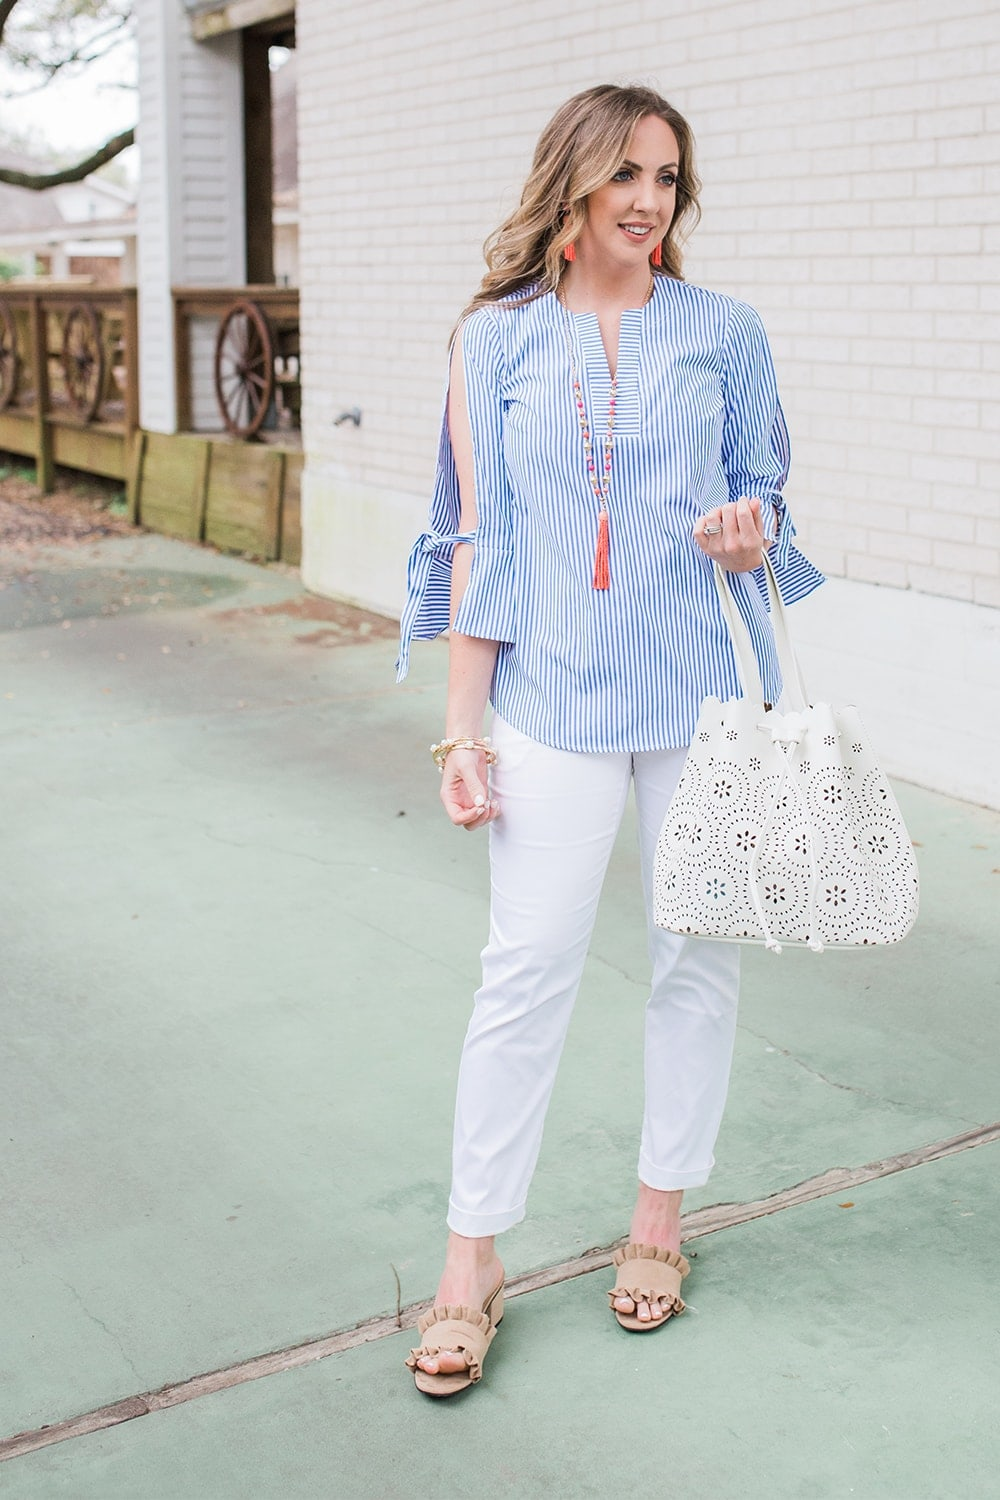 Houston blogger Meg O. on the Go shares a perfect spring outfit from the Avon Modern Southern Belle Collection from Avon